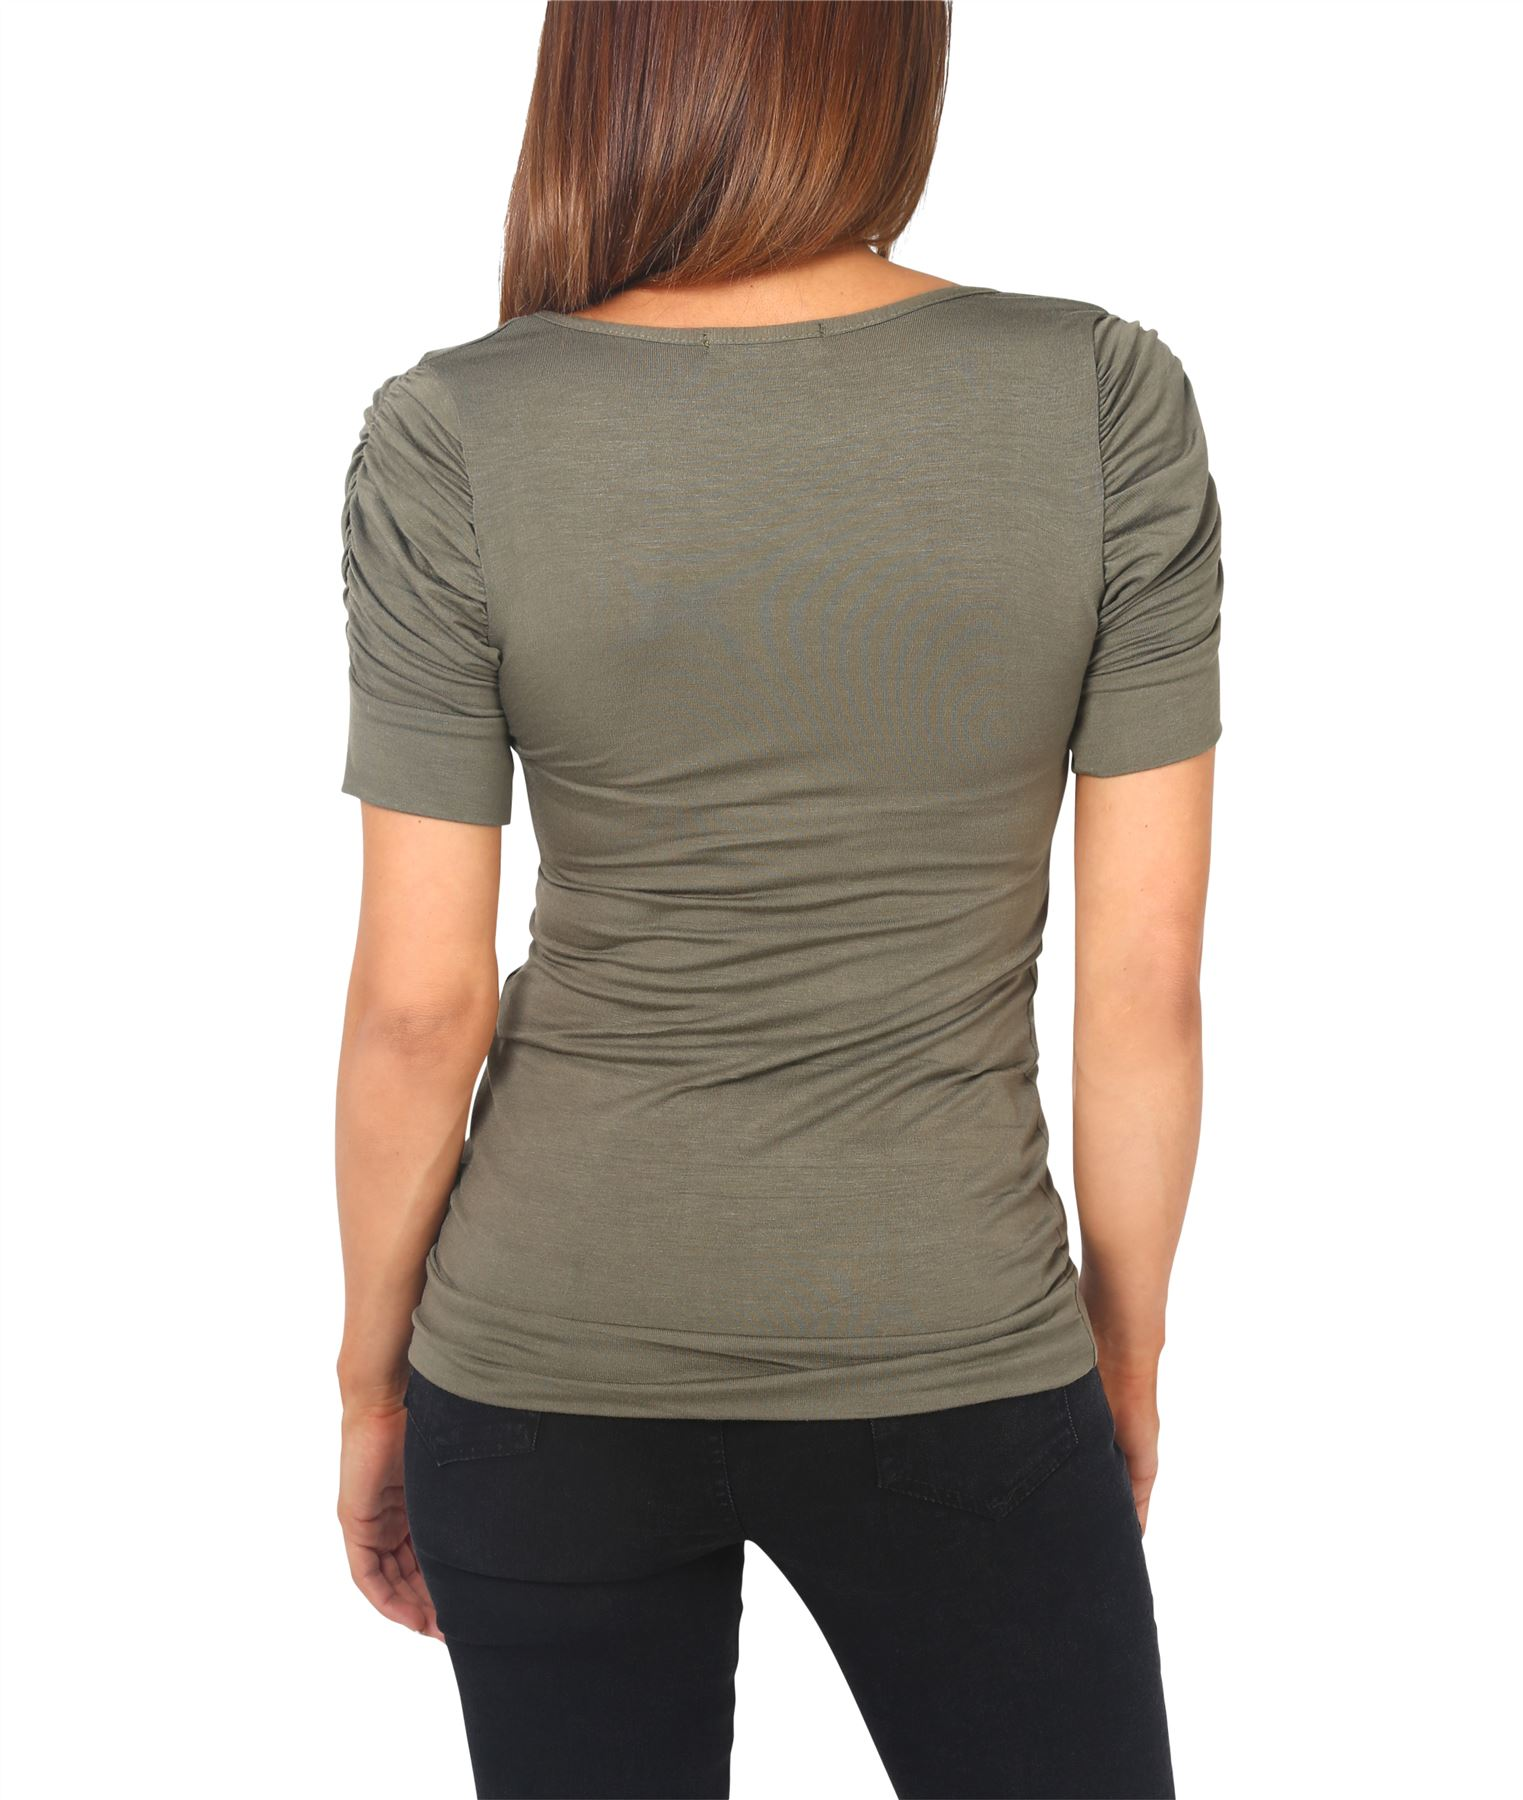 Womens-Ladies-Long-Blouse-Ruched-Pleated-Sleeve-Stretch-Jersey-Plunge-Top-Tshirt thumbnail 14